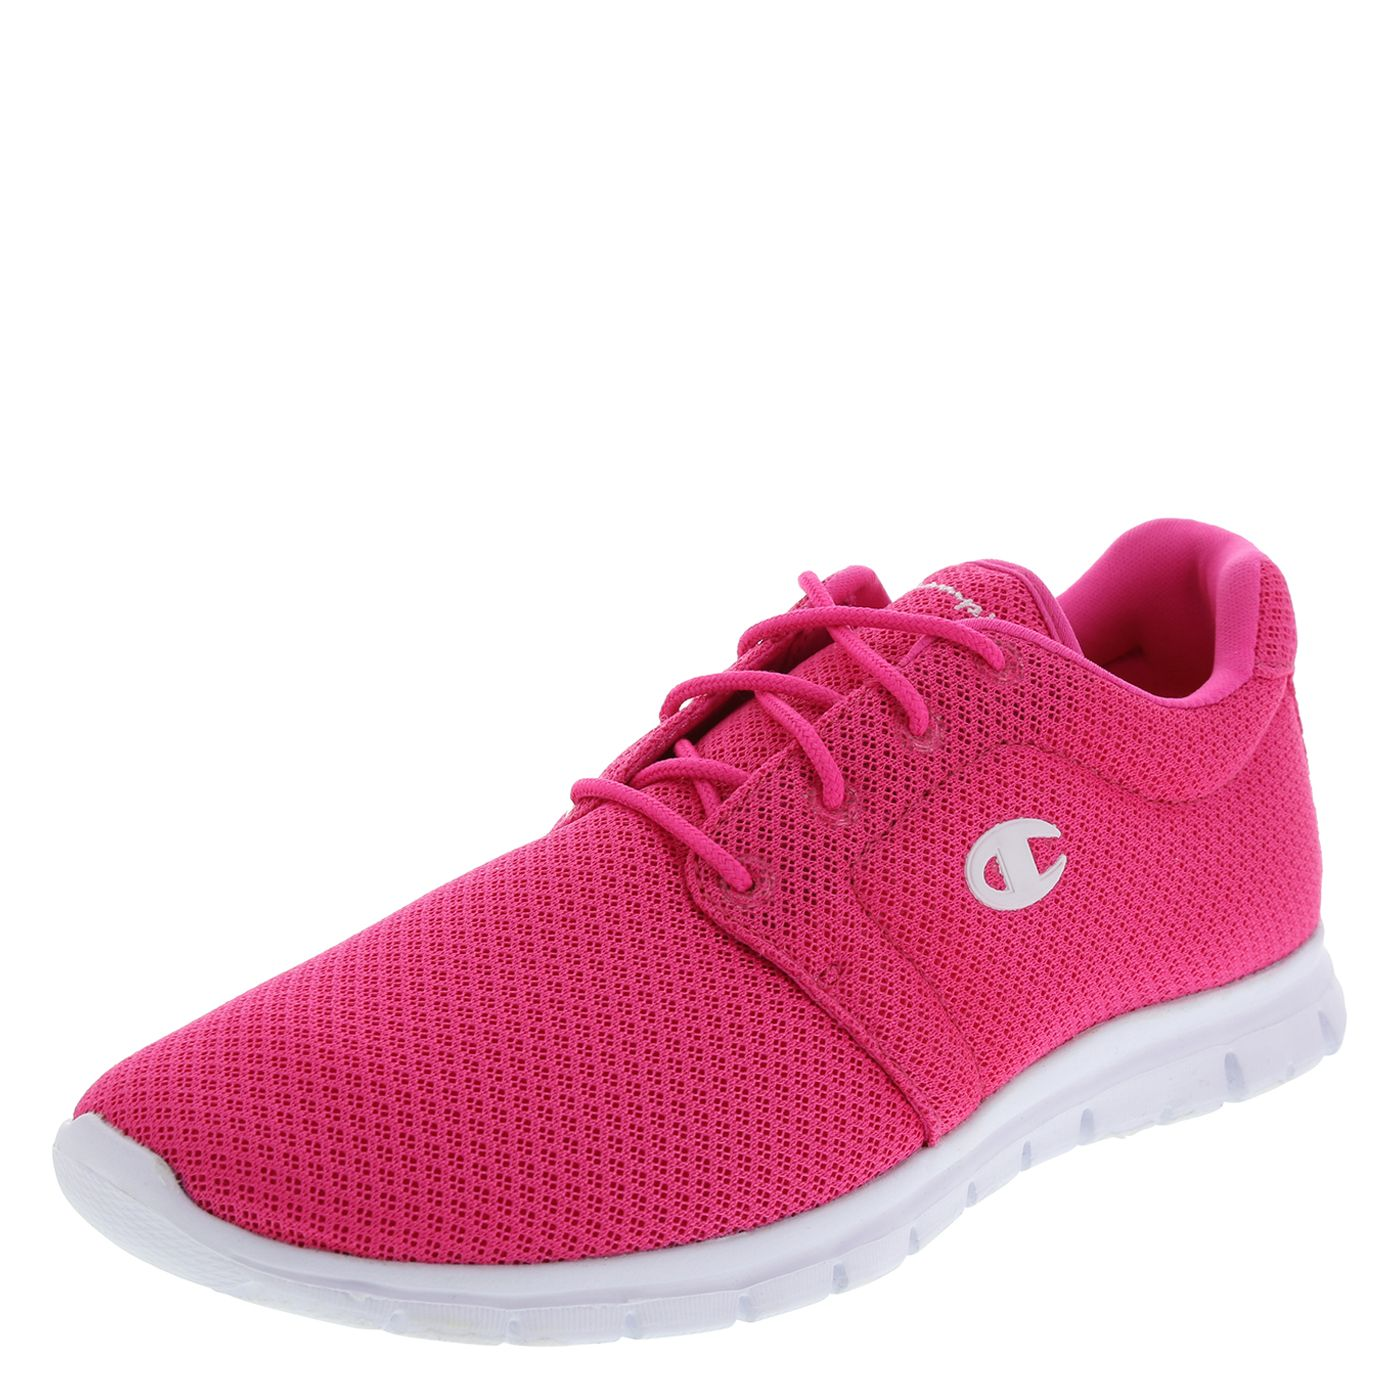 52f48266f payless.com Champion Women s Women s Ingage Runner (Color - Pink ...